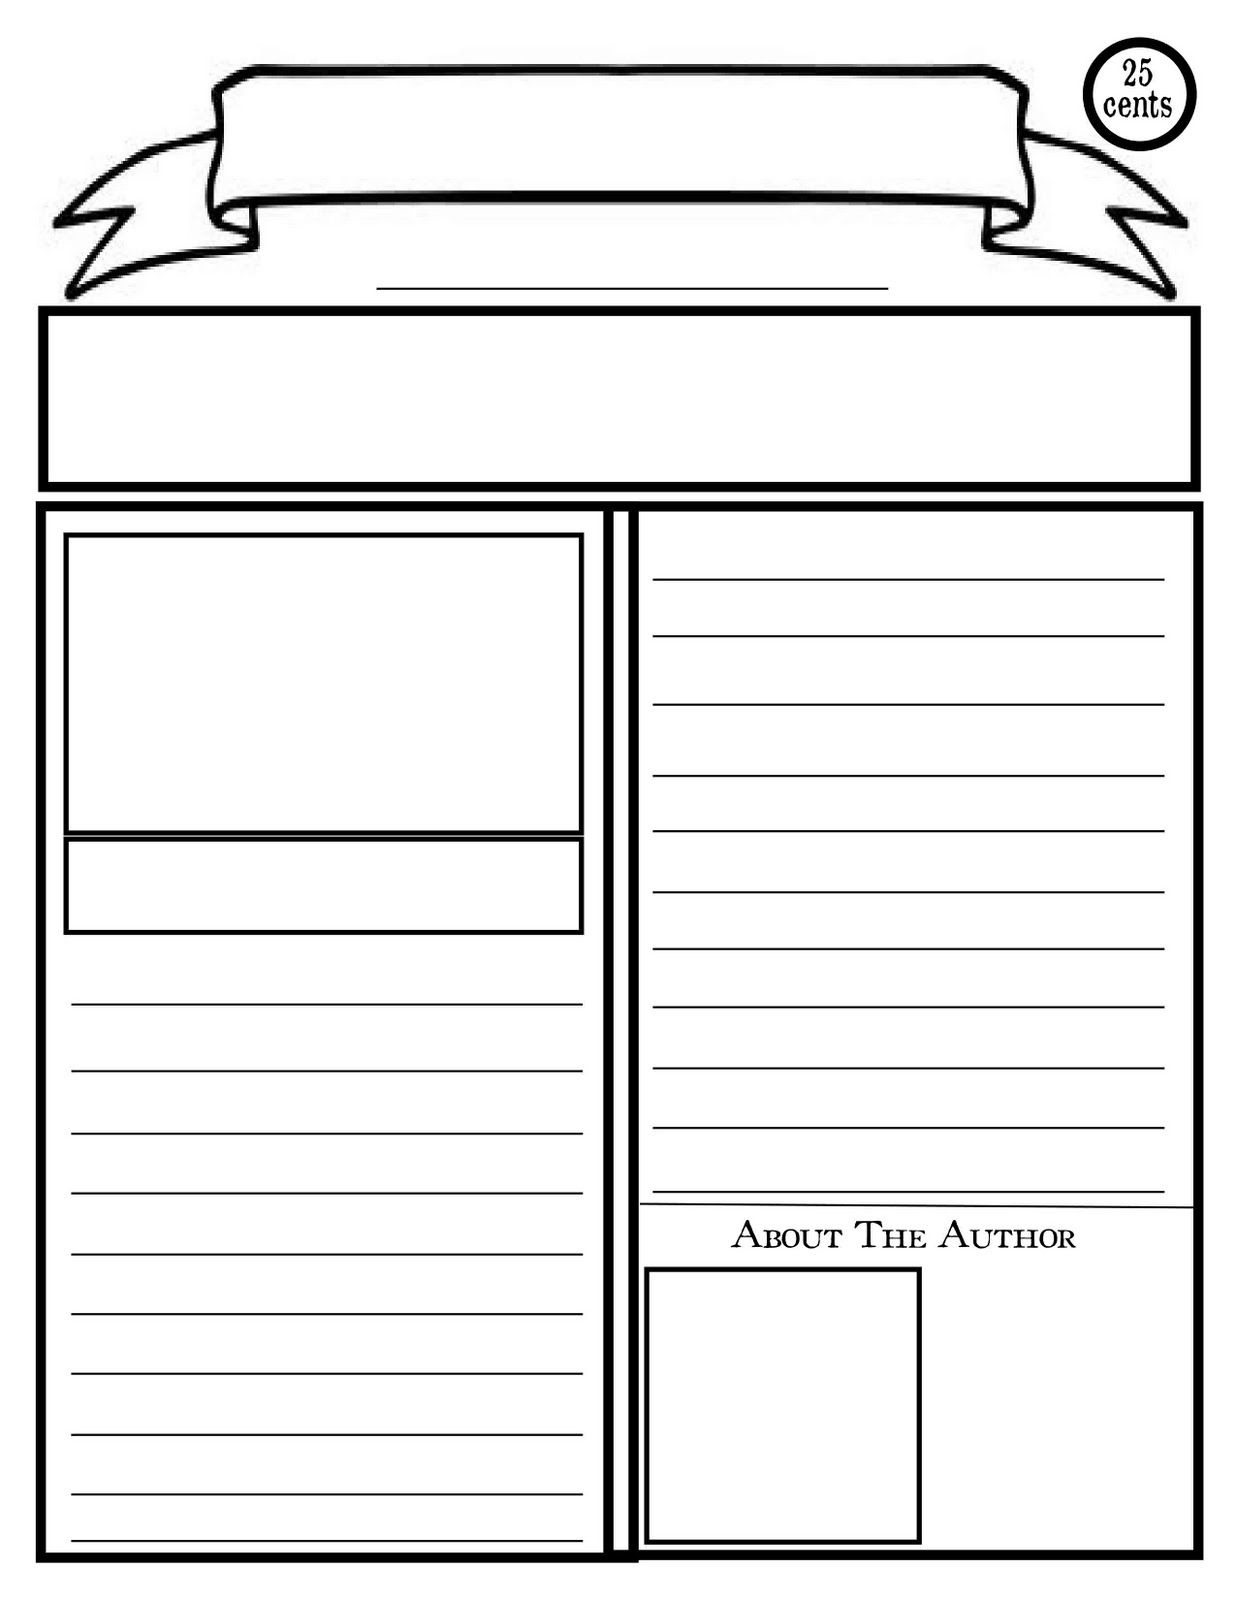 Blank Newspaper Template For Kids Printable | Homework Help - Free Printable Newspaper Templates For Students